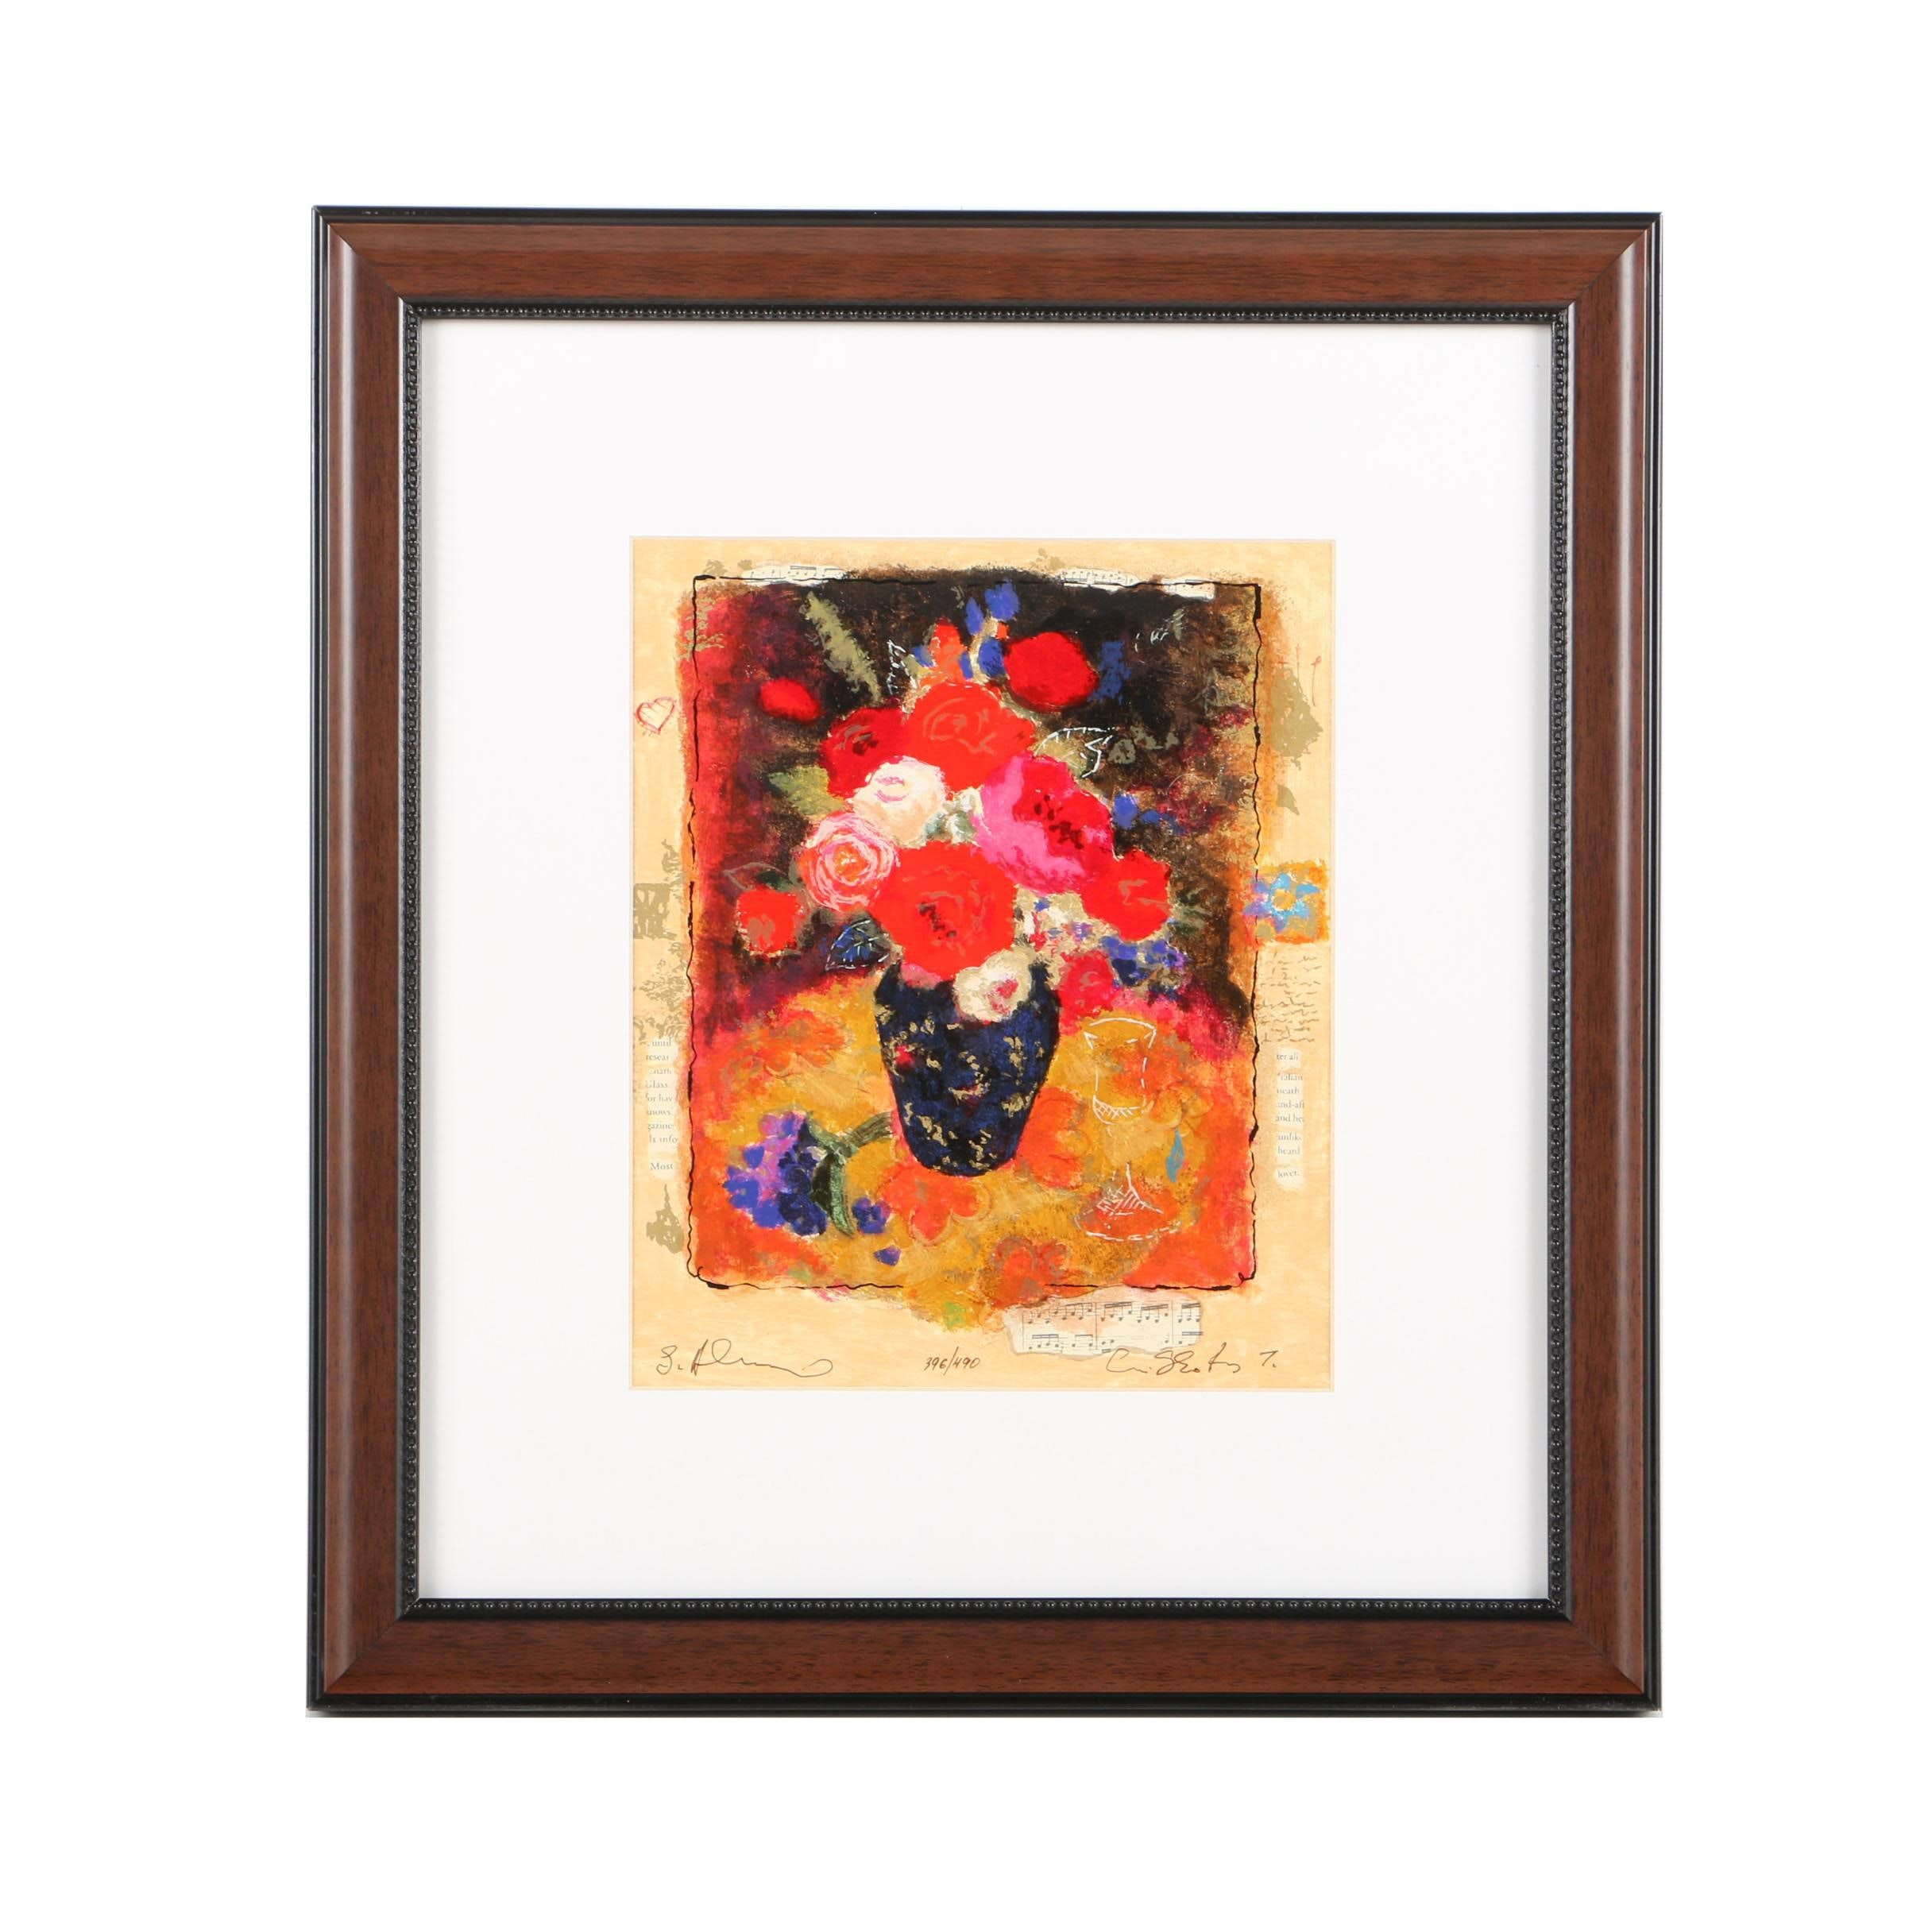 Limited Edition Serigraph on Paper Still Life of a Vase of Flowers